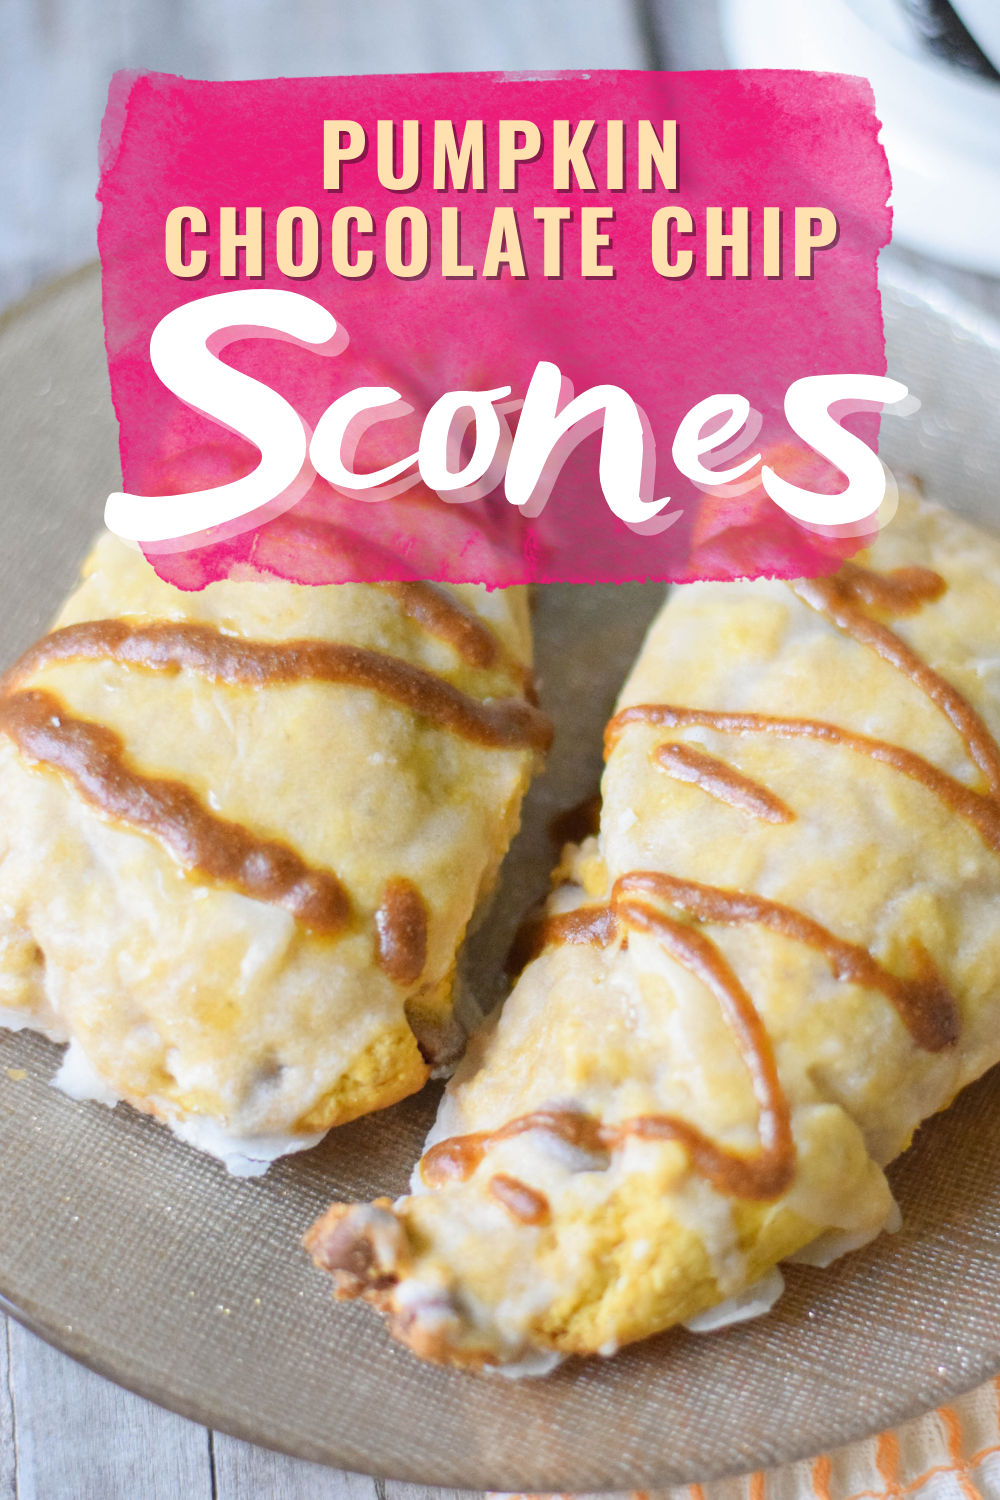 PUMPKIN CHOCOLATE CHIP SCONES - Looking for a delicious and easy pumpkin chocolate chip scones recipe? This recipe from Orchids + Sweet Tea has you covered! | Pumpkin Scone Recipe - Pumpkin Scones